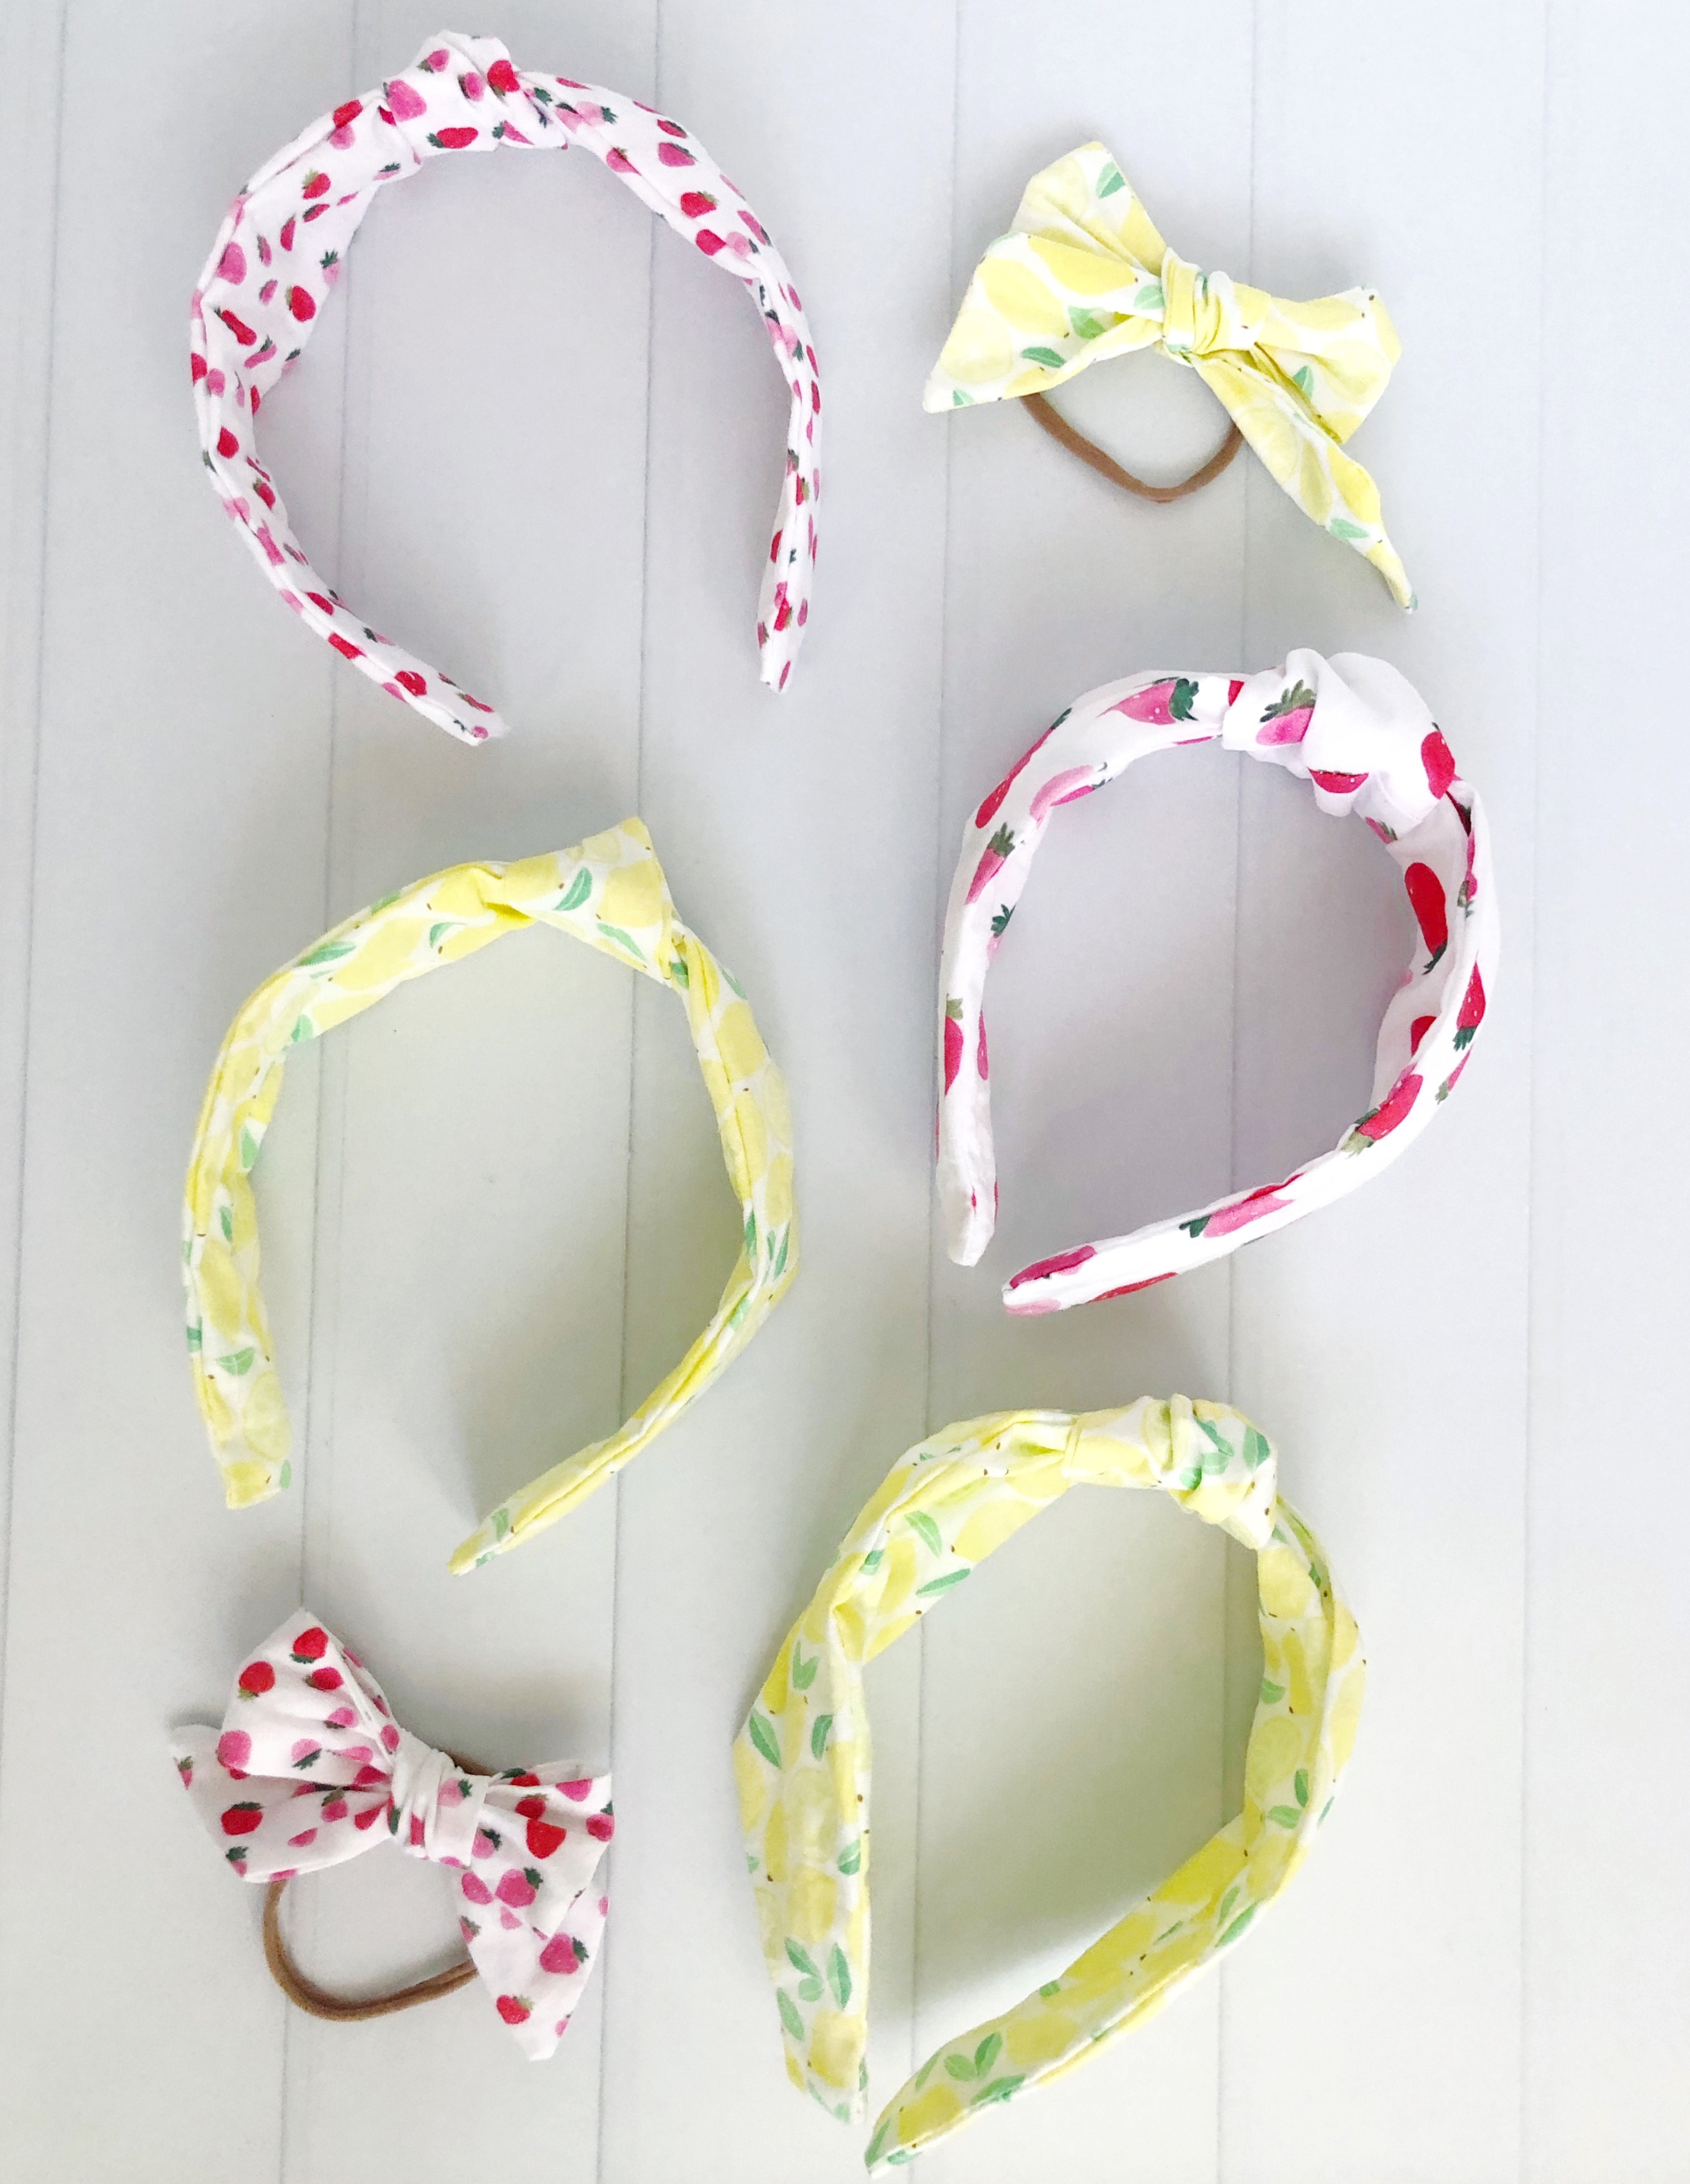 printed headbands for kids and mom